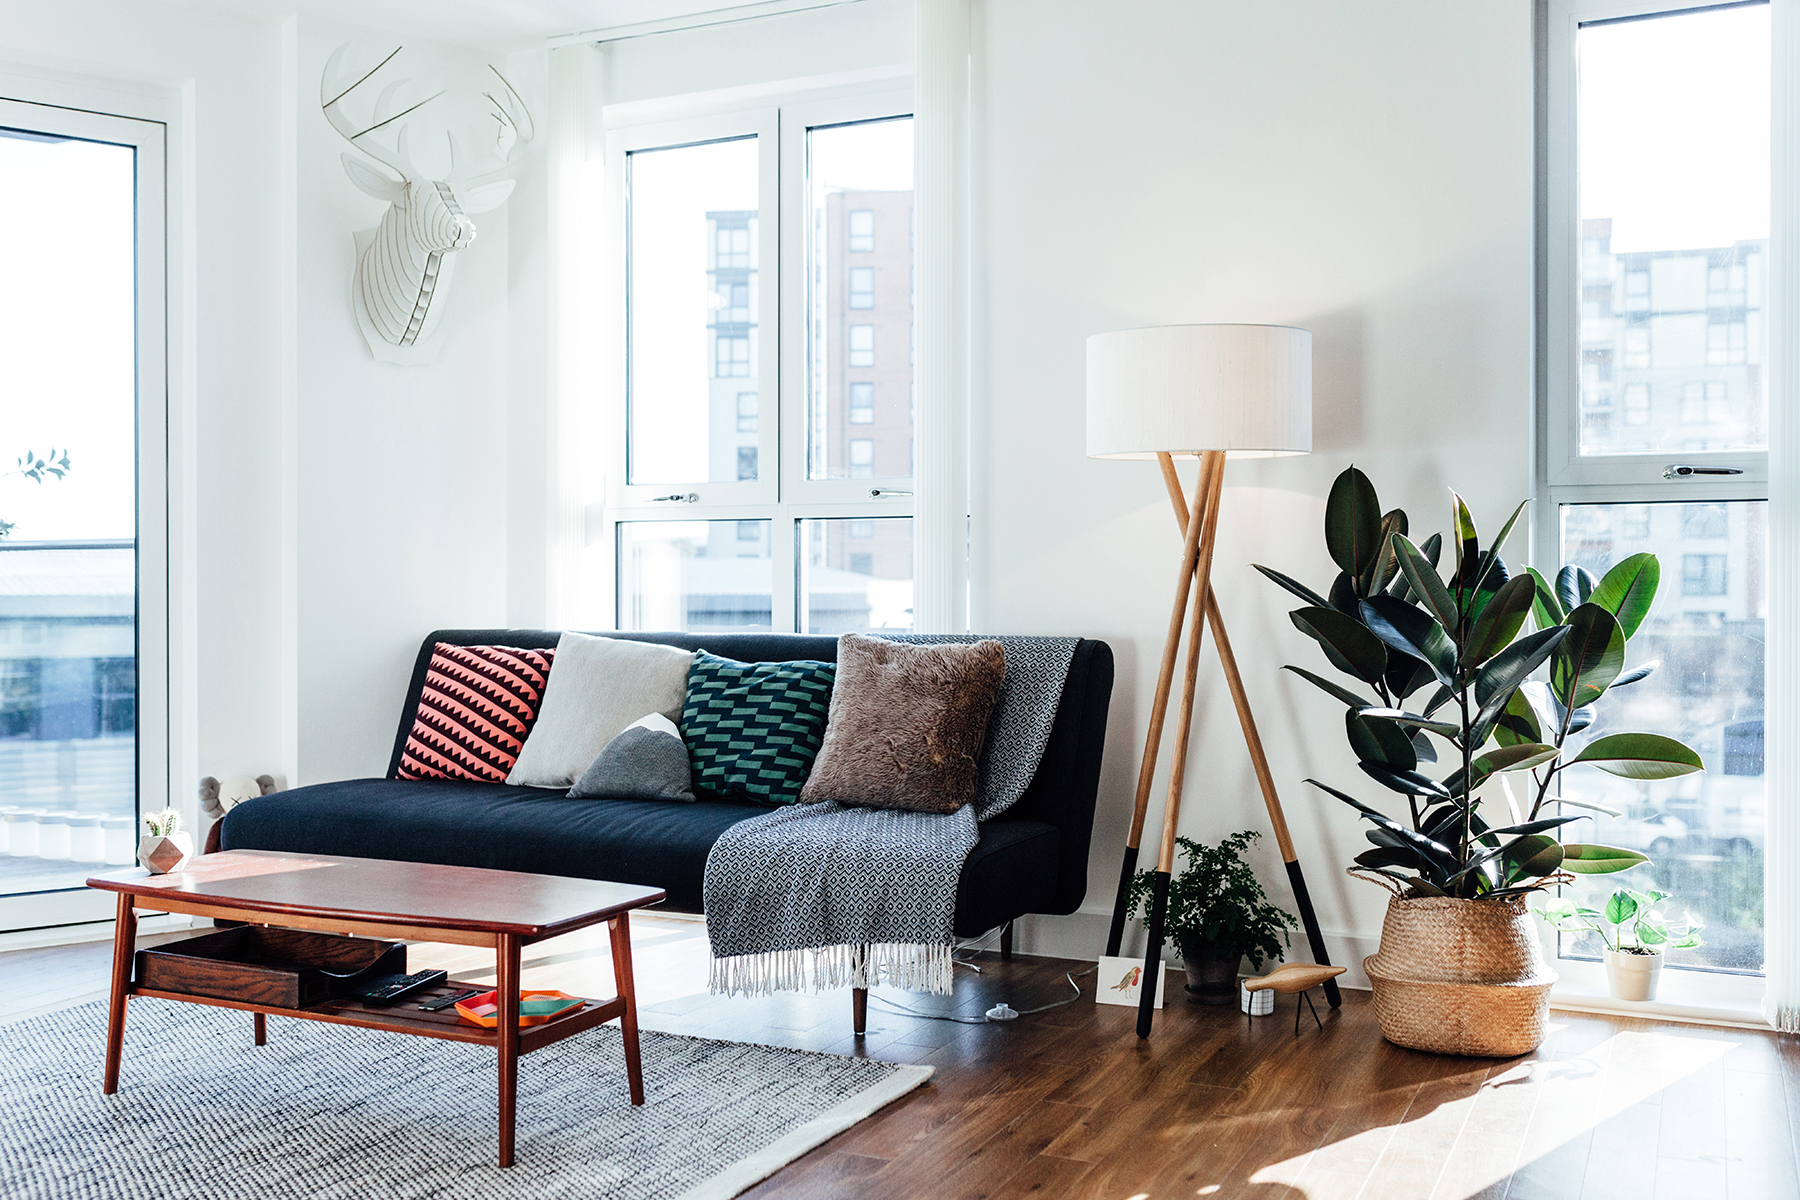 6 Simple Secrets to Finding Your Personal Home Decor Style | Real ...